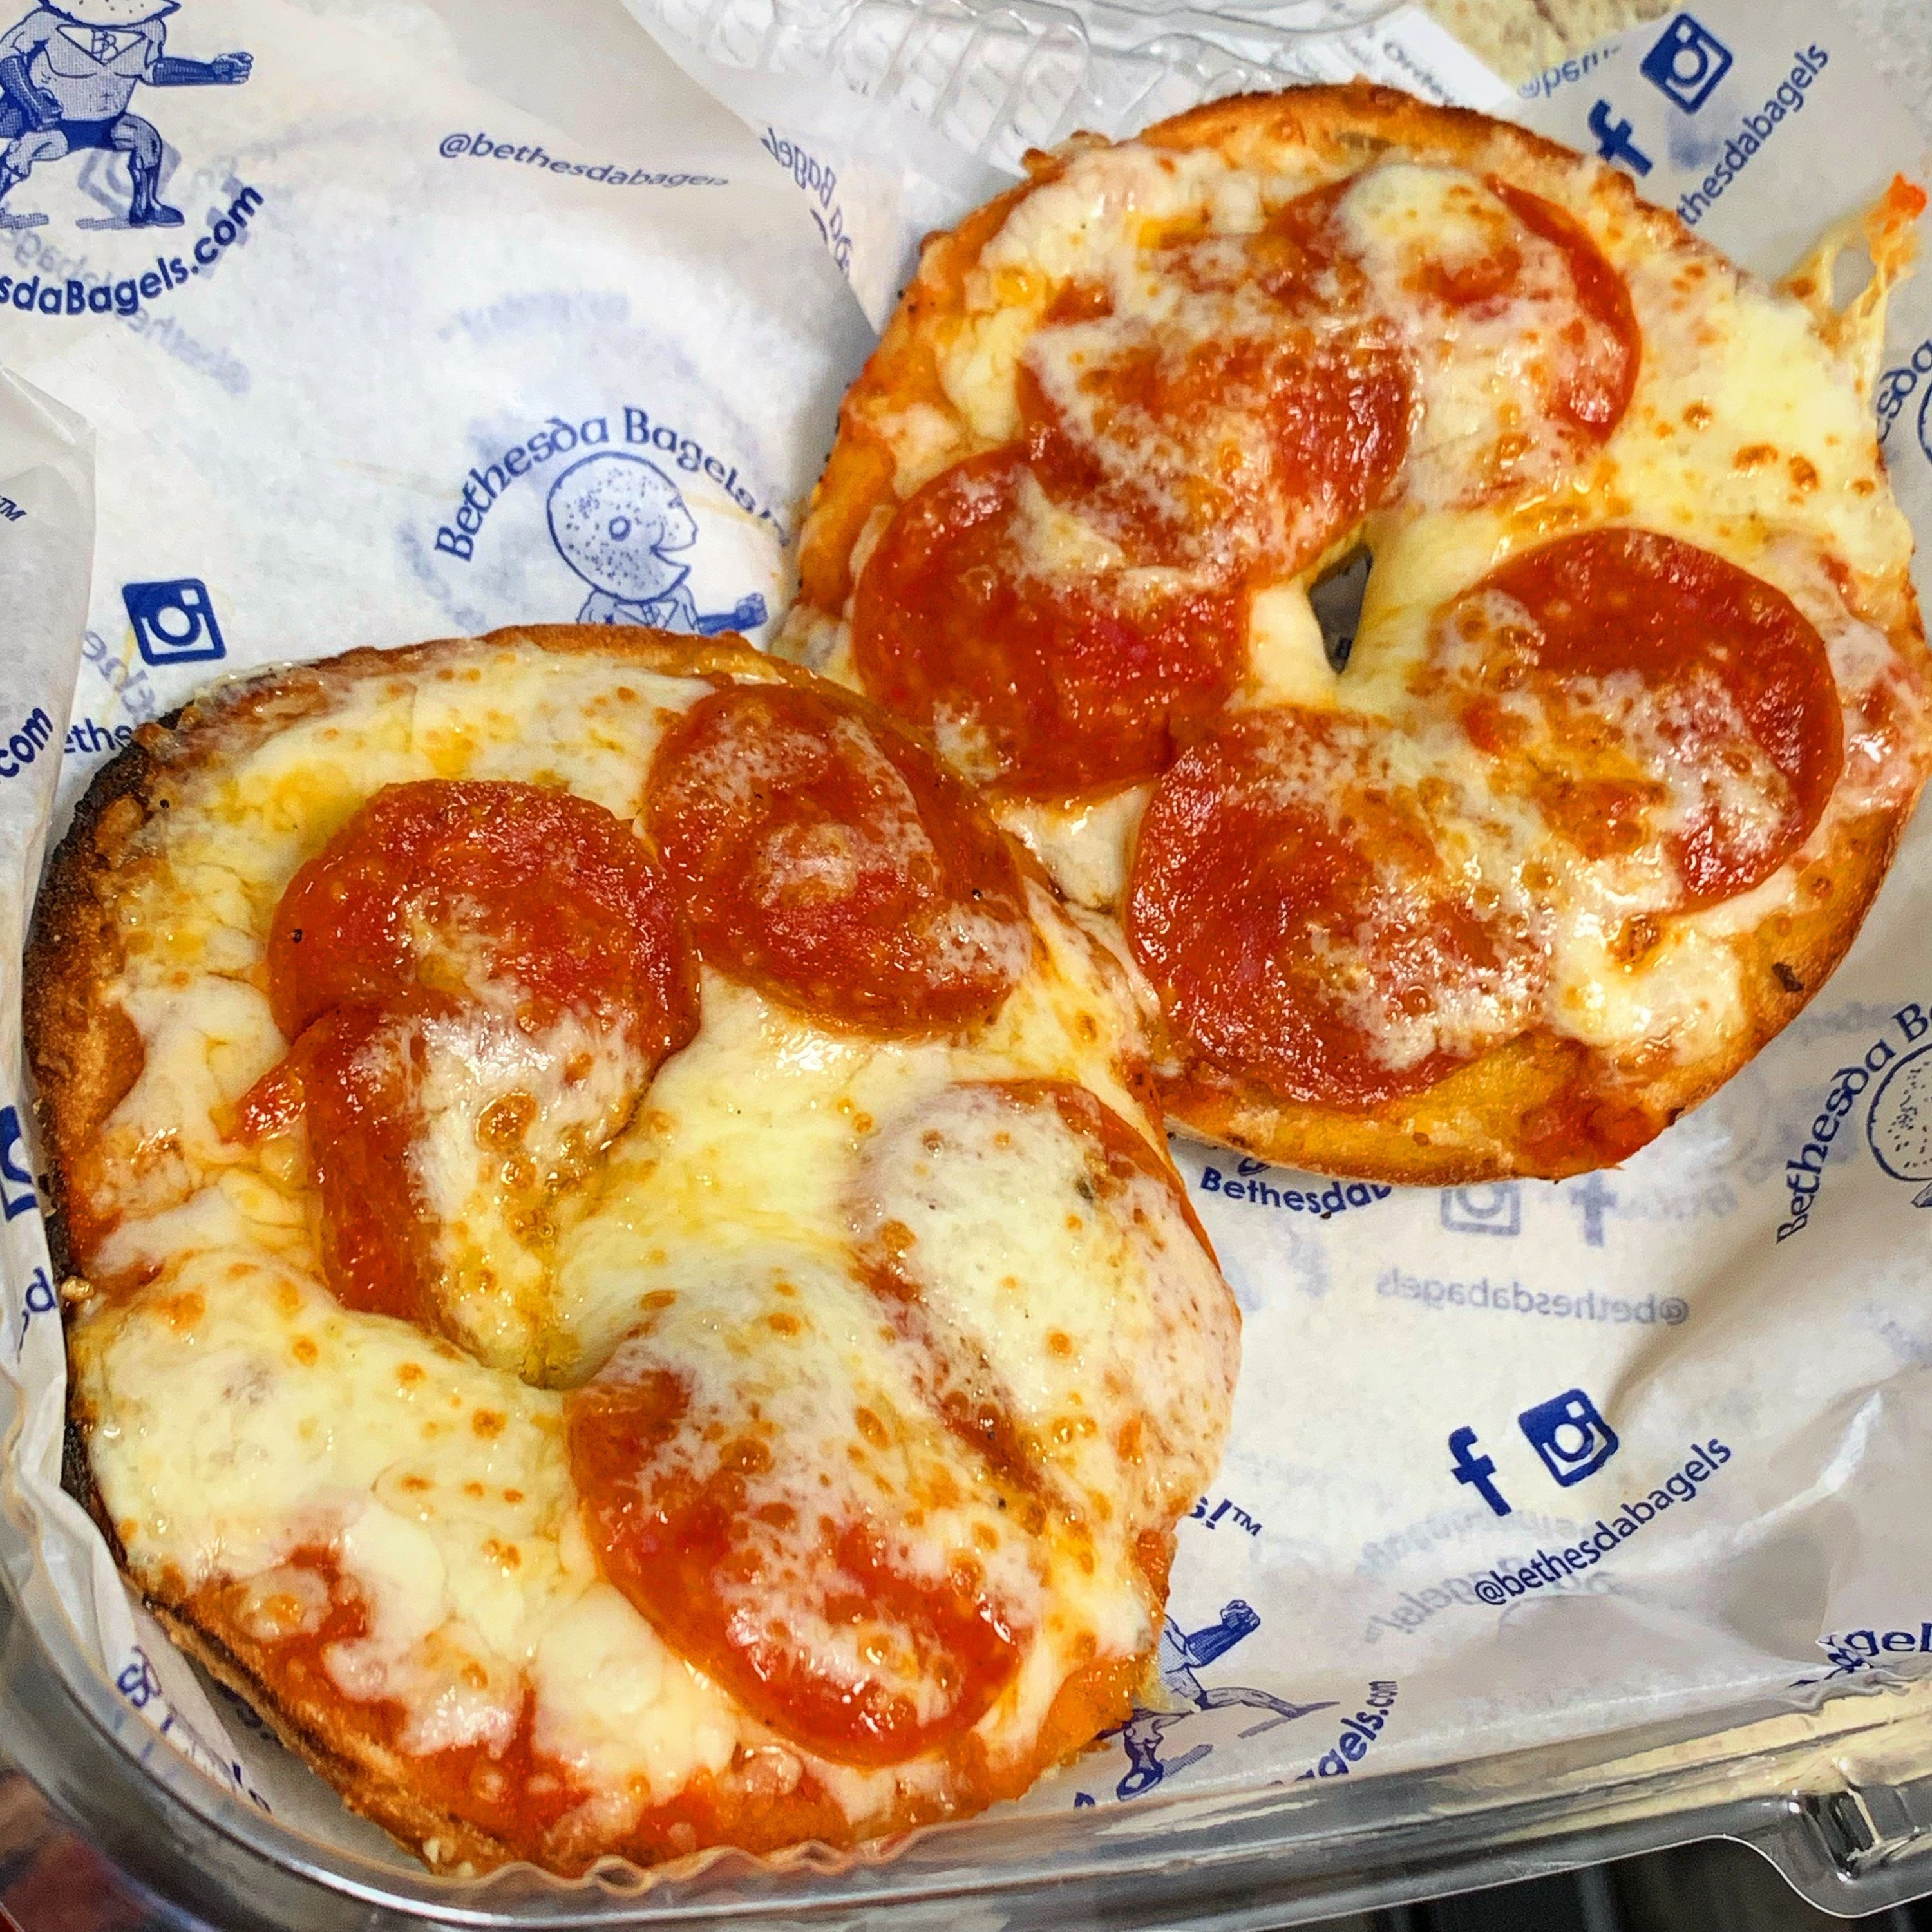 Bethesda Bagels' pepperoni pizza bagel. Photograph courtesy of Bethesda Bagels.